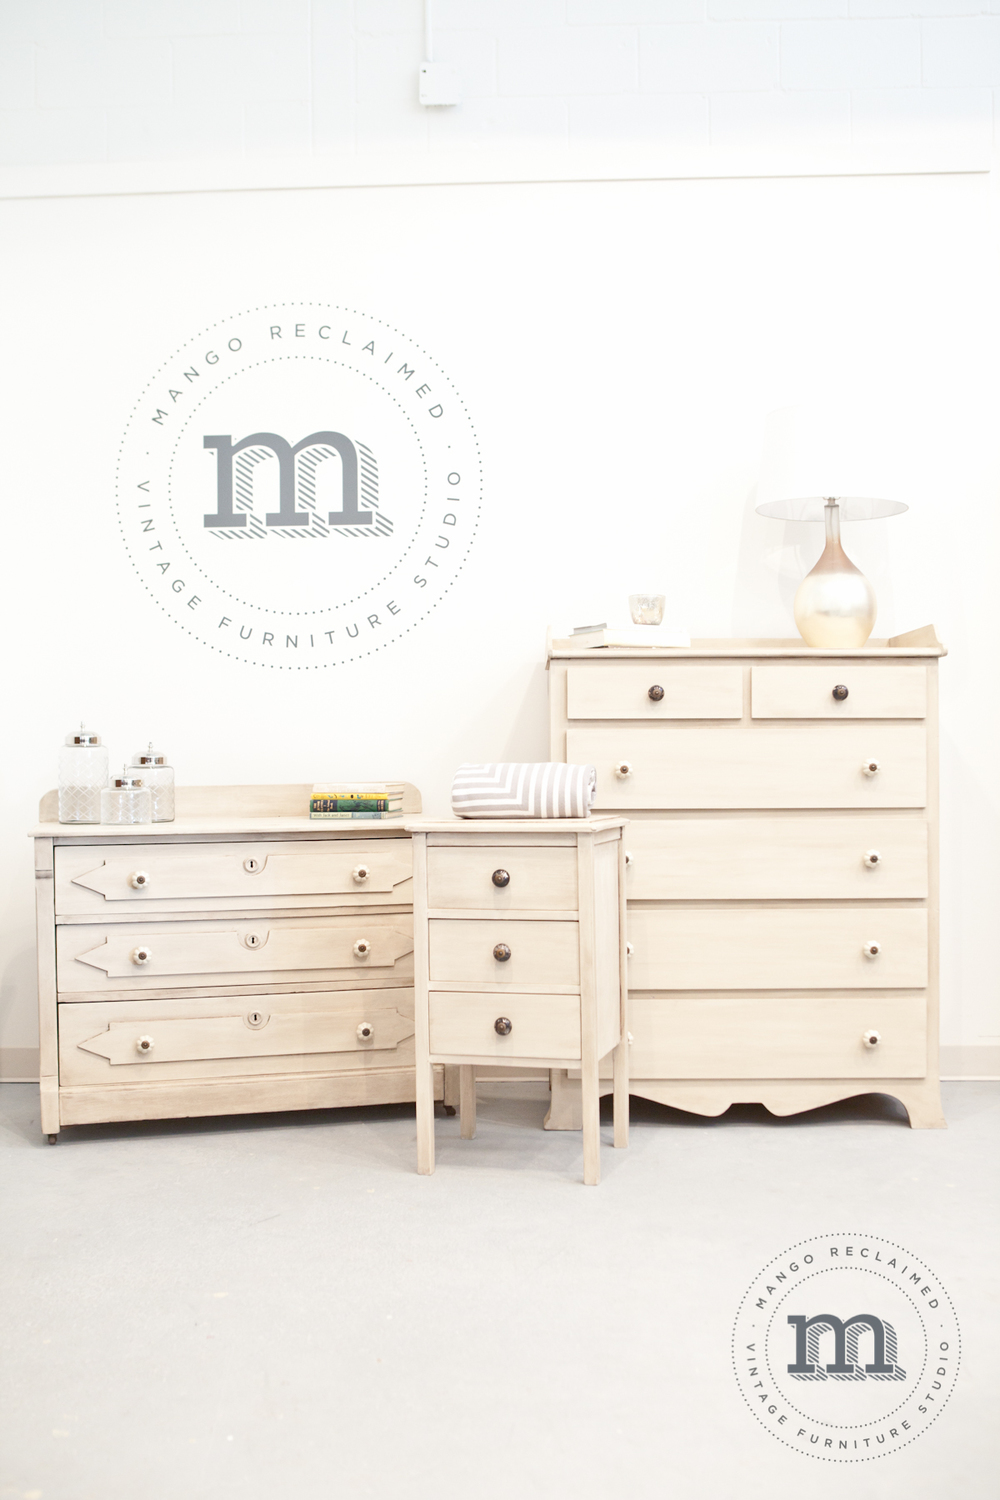 Custom restyled bedroom set by Mango Reclaimed. Styled and accessorized by  The Inspiration Nest . All products available for purchase at Mango Reclaimed.